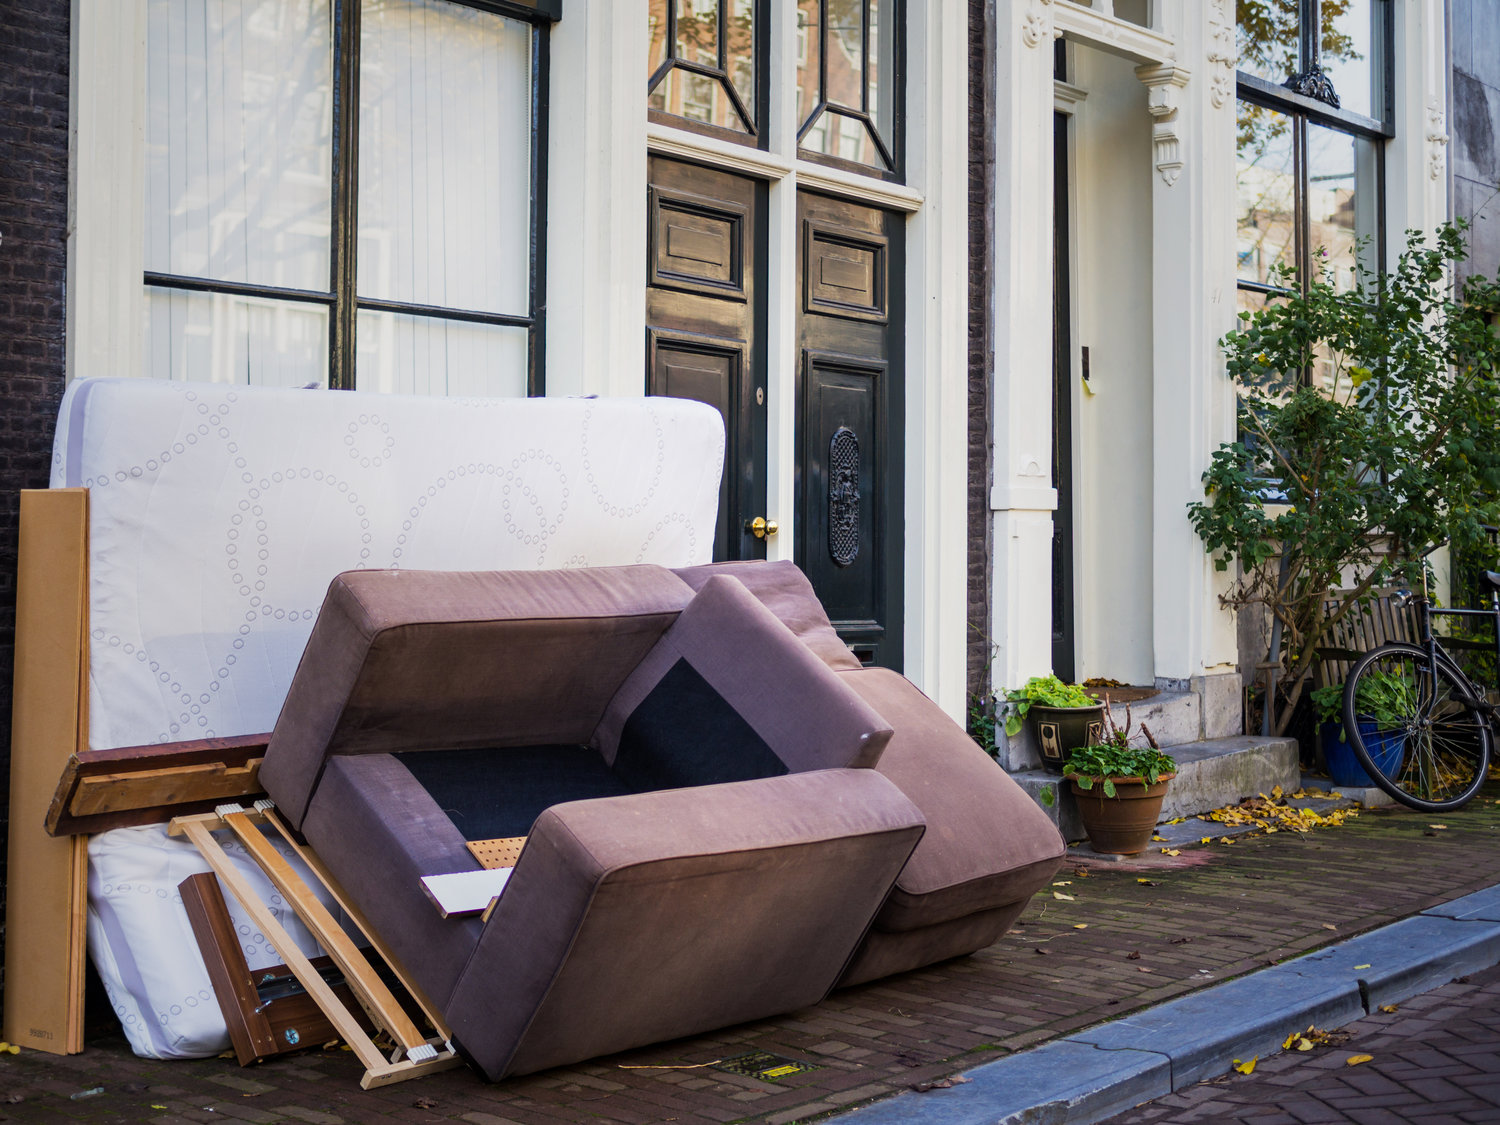 Need Your Old Furniture Or Rubbish Cleared We Can Help You Dispose Of Unwanted Items